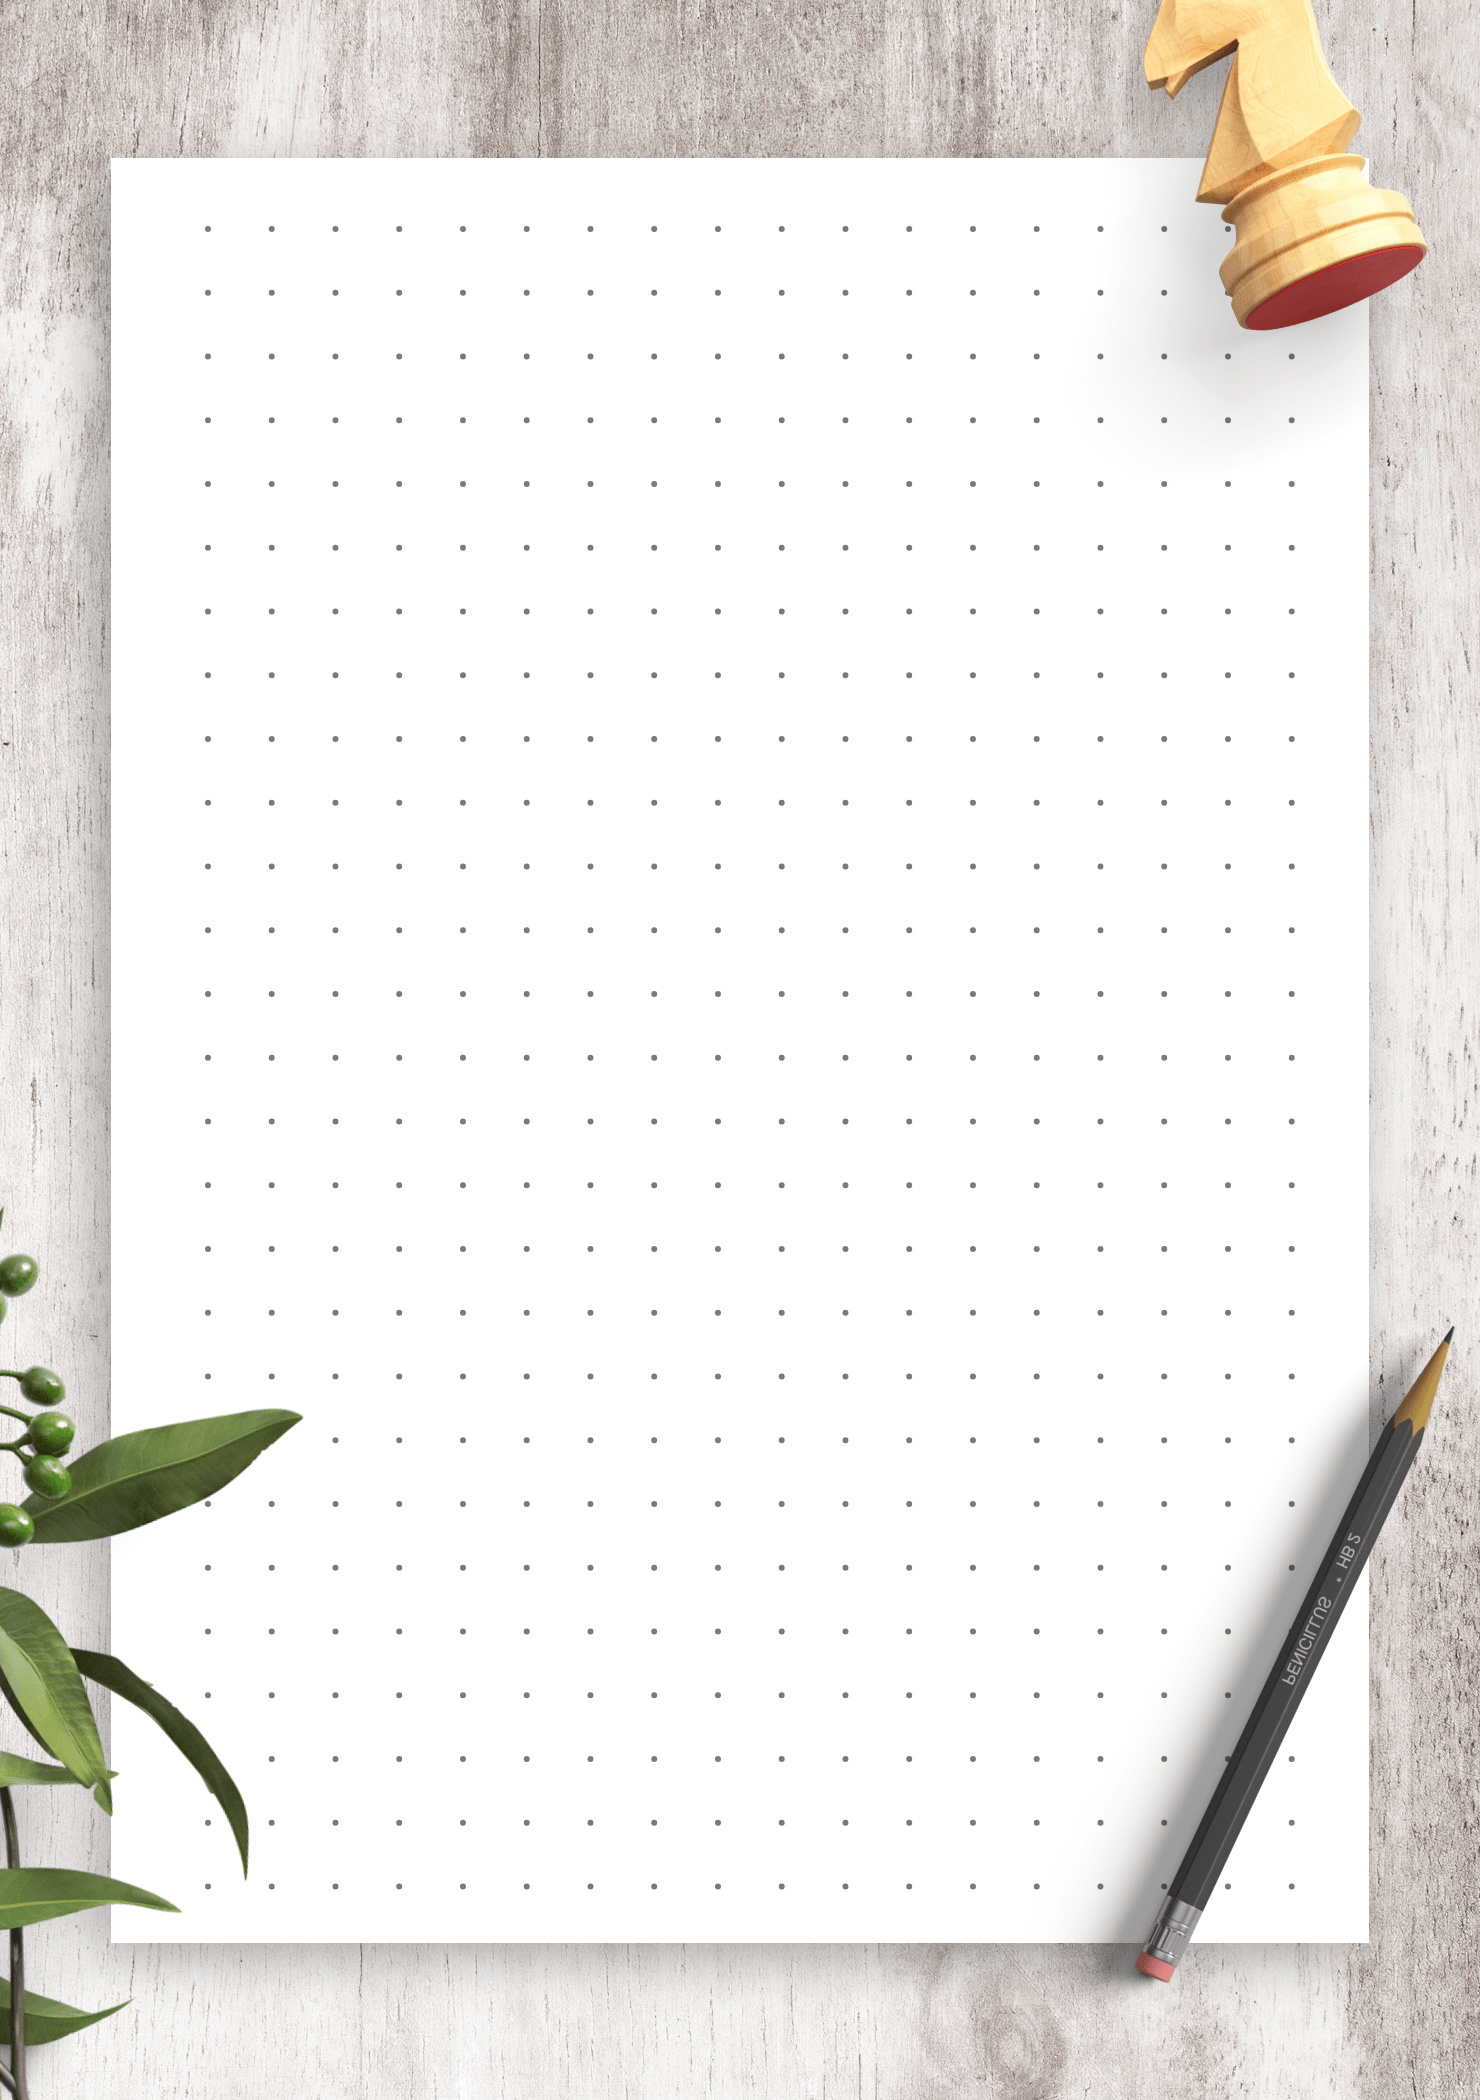 Download Printable Dot Grid Paper With 7 5 Mm Spacing